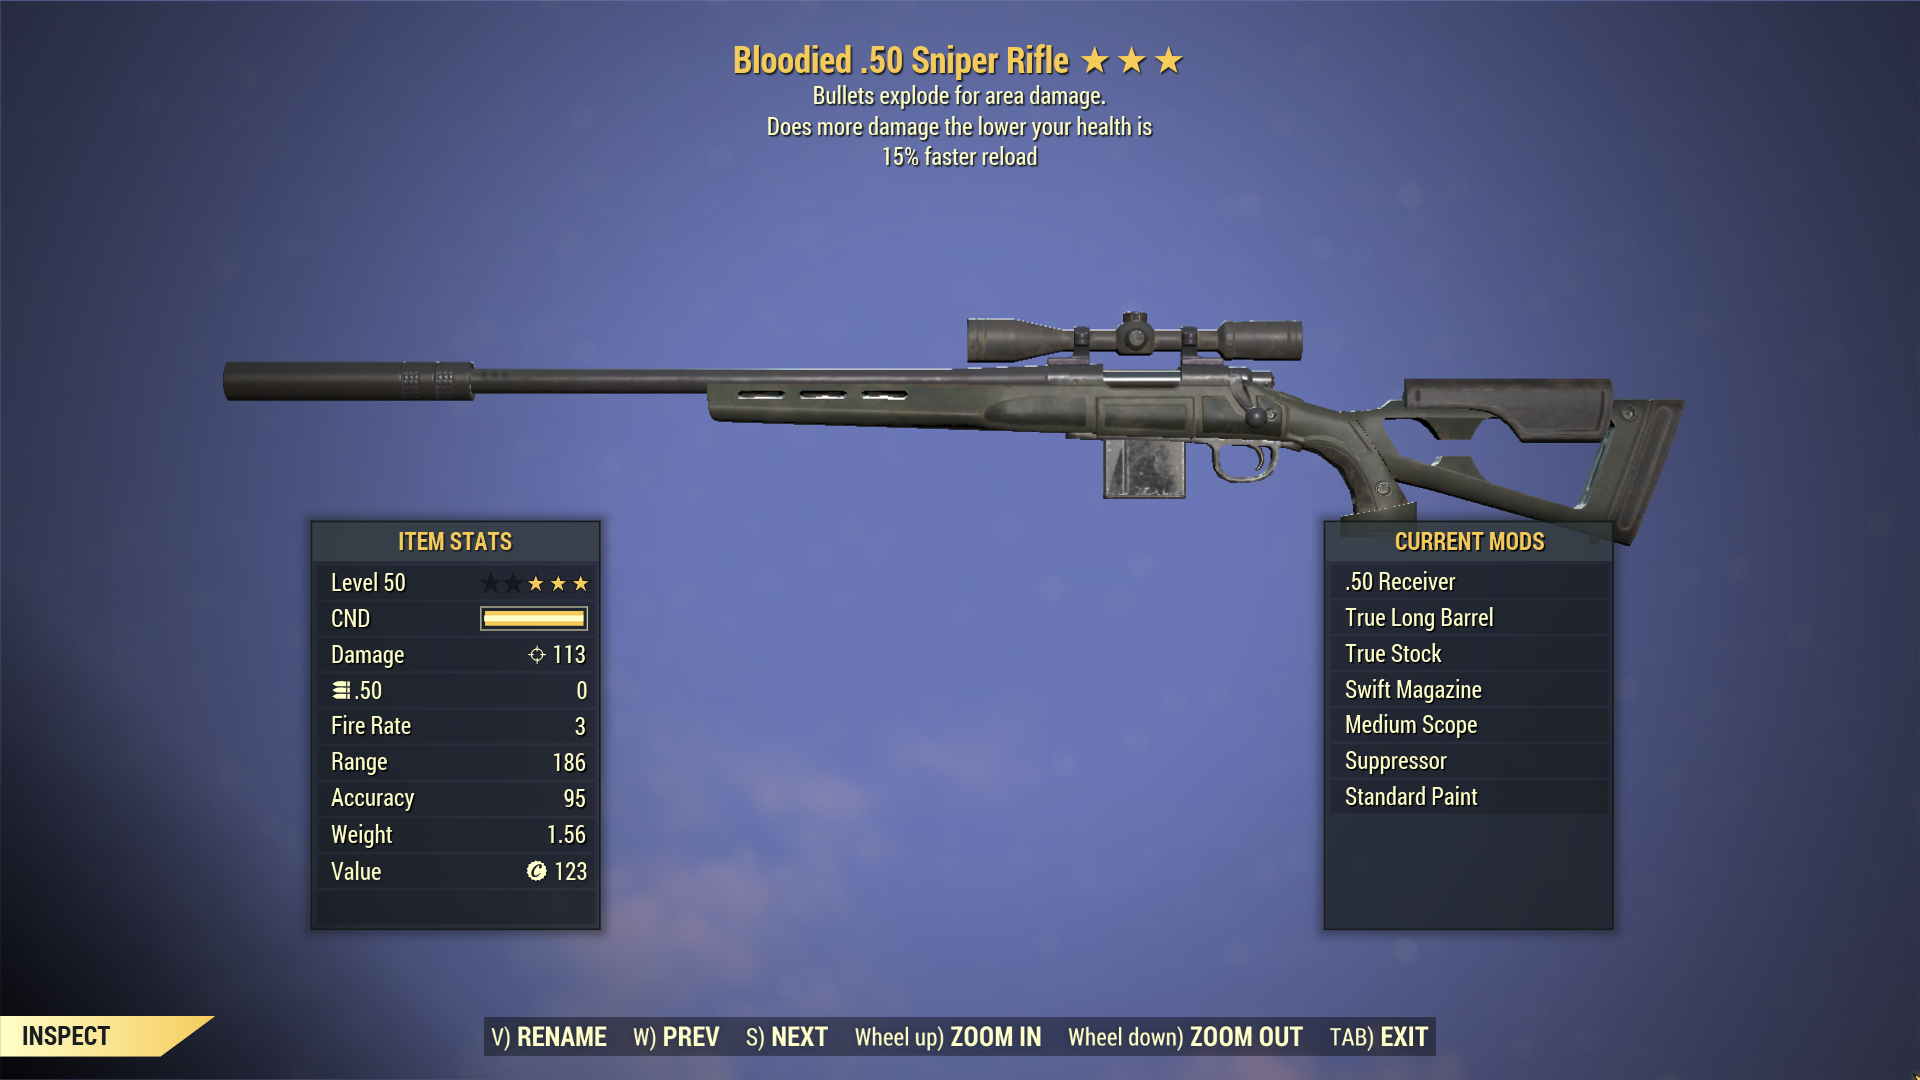 ★★★ Bloodied Explosive Sniper Rifle[15% FASTER RELOAD] | Fully Modified | MAX LVL | FAST DELIVERY |